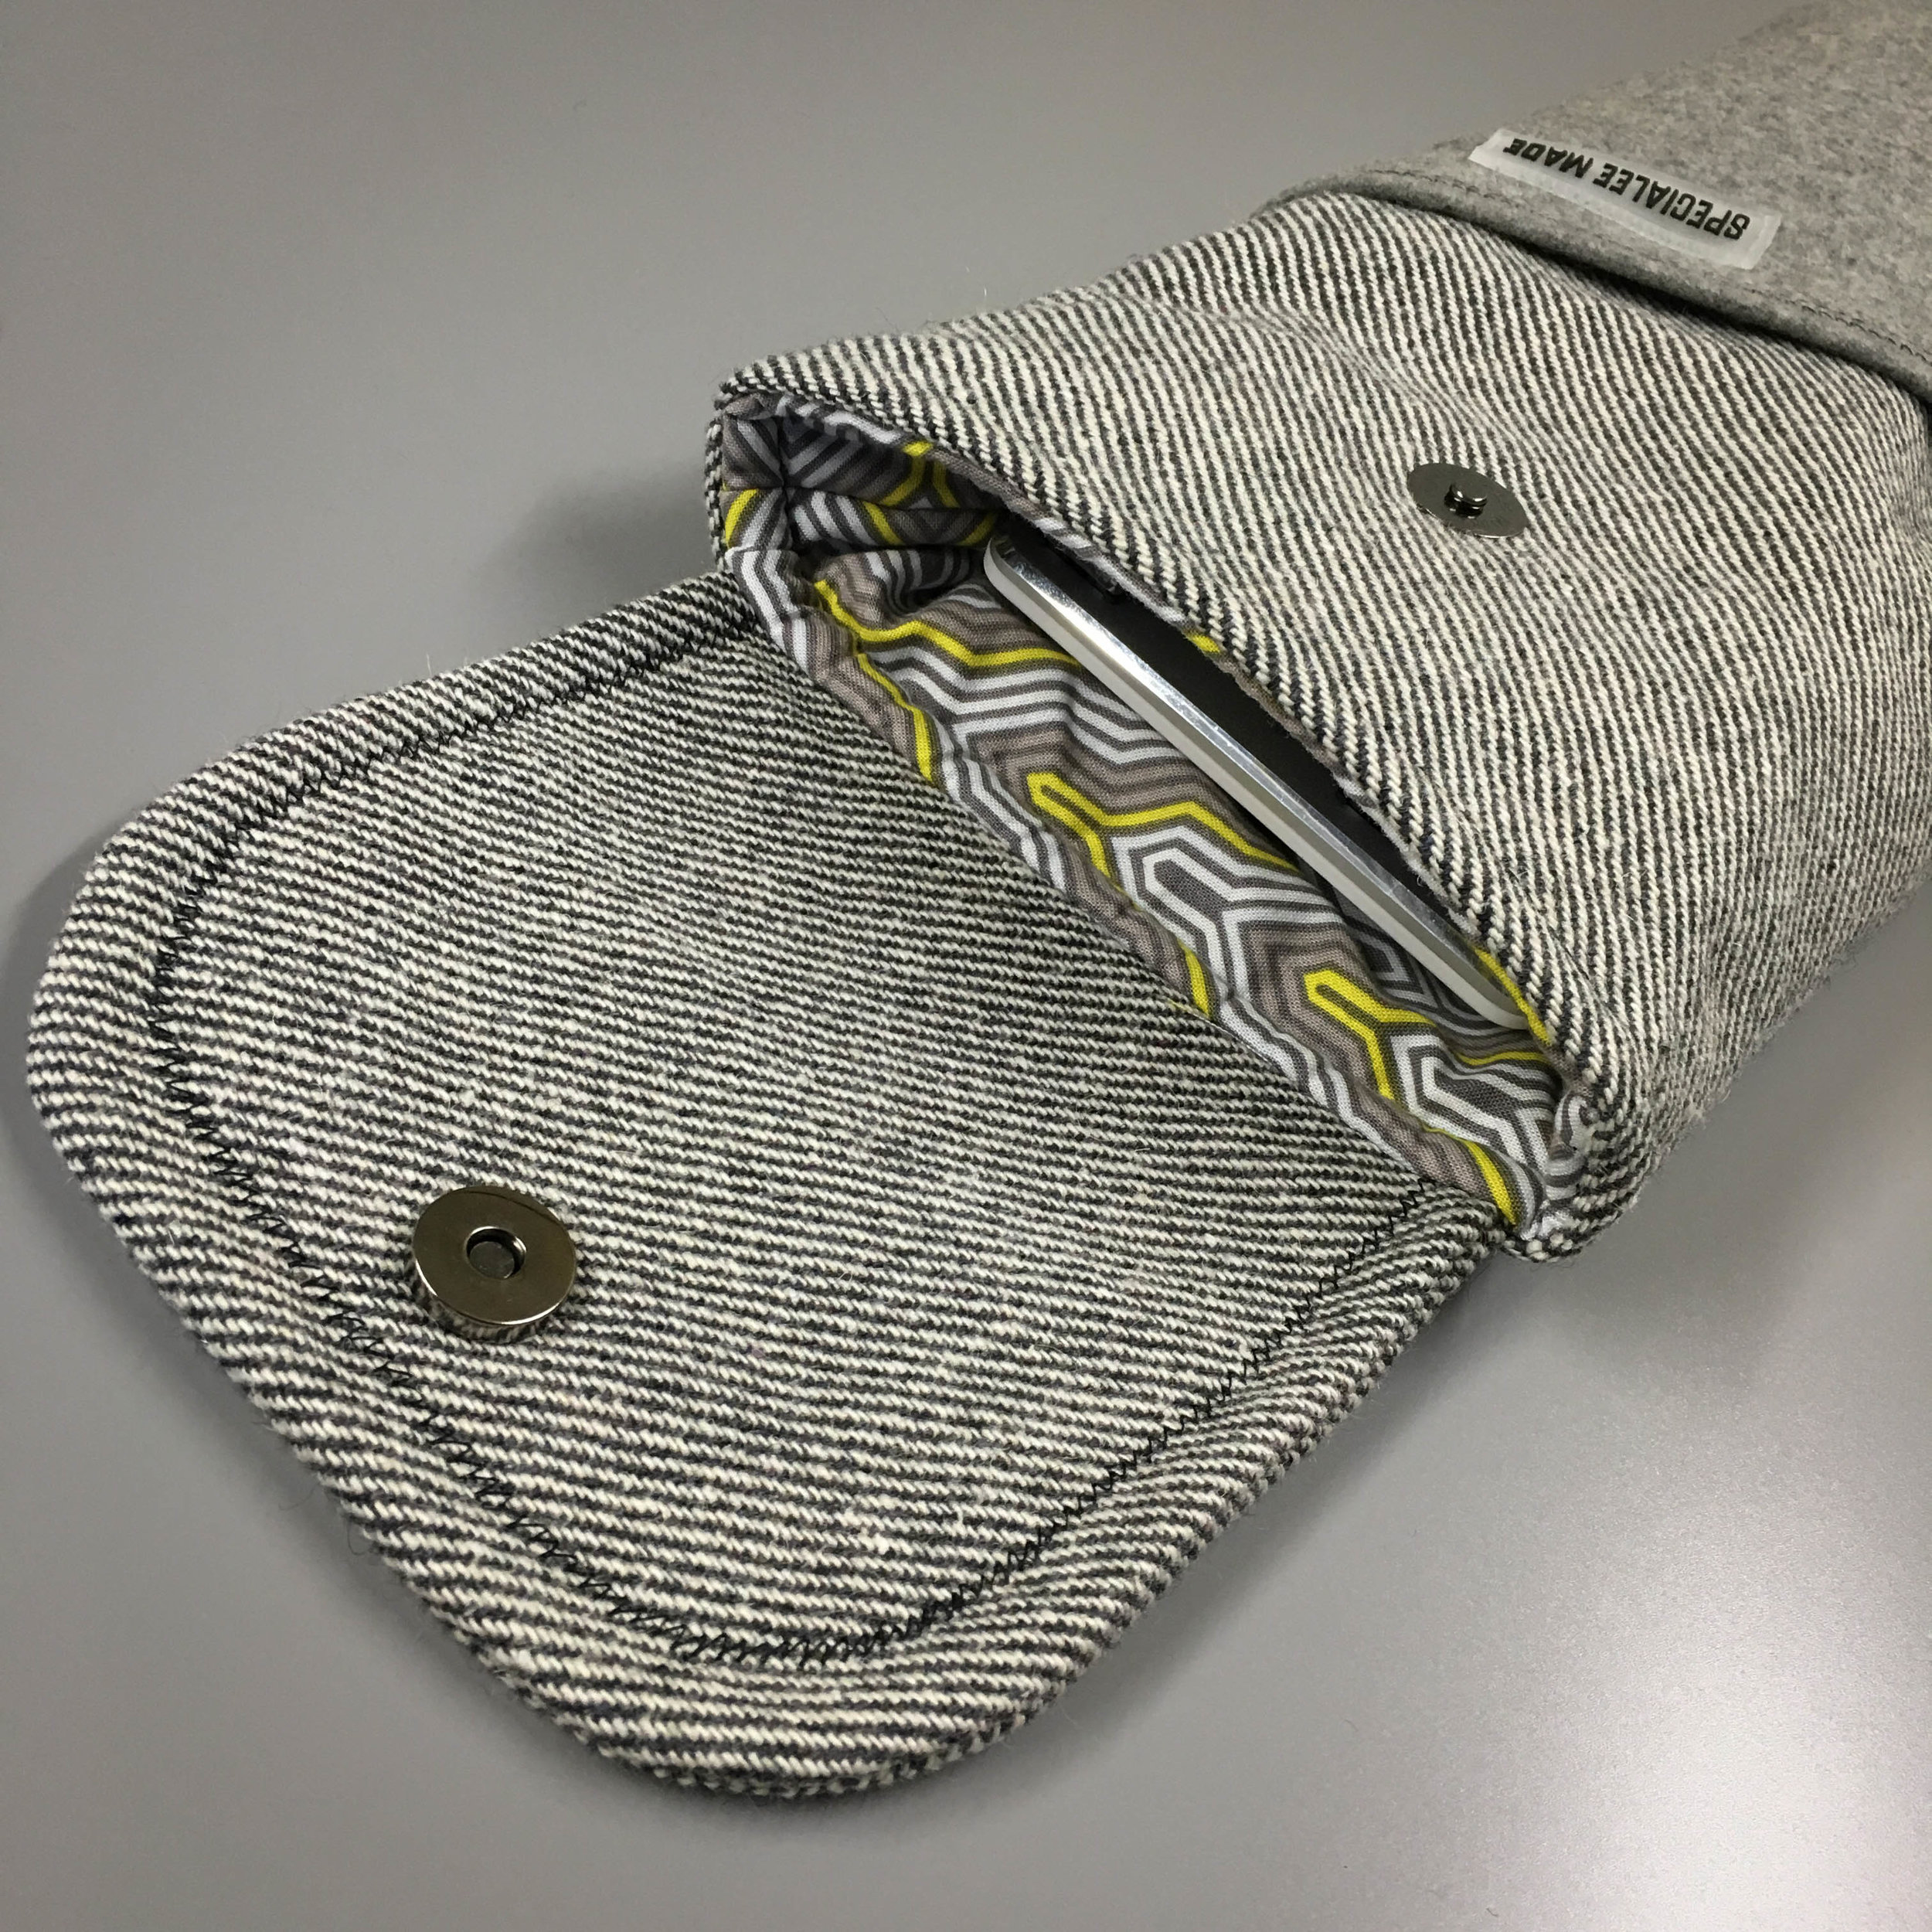 CLOSE STYLE: MAGNETIC FLAP - Magnetic buttonson the flap keep your keyboard fully secure within the sleeve. The number of buttons depends on the size or shape of the flap. Typically, round flaps have onebutton, while square flaps have two.